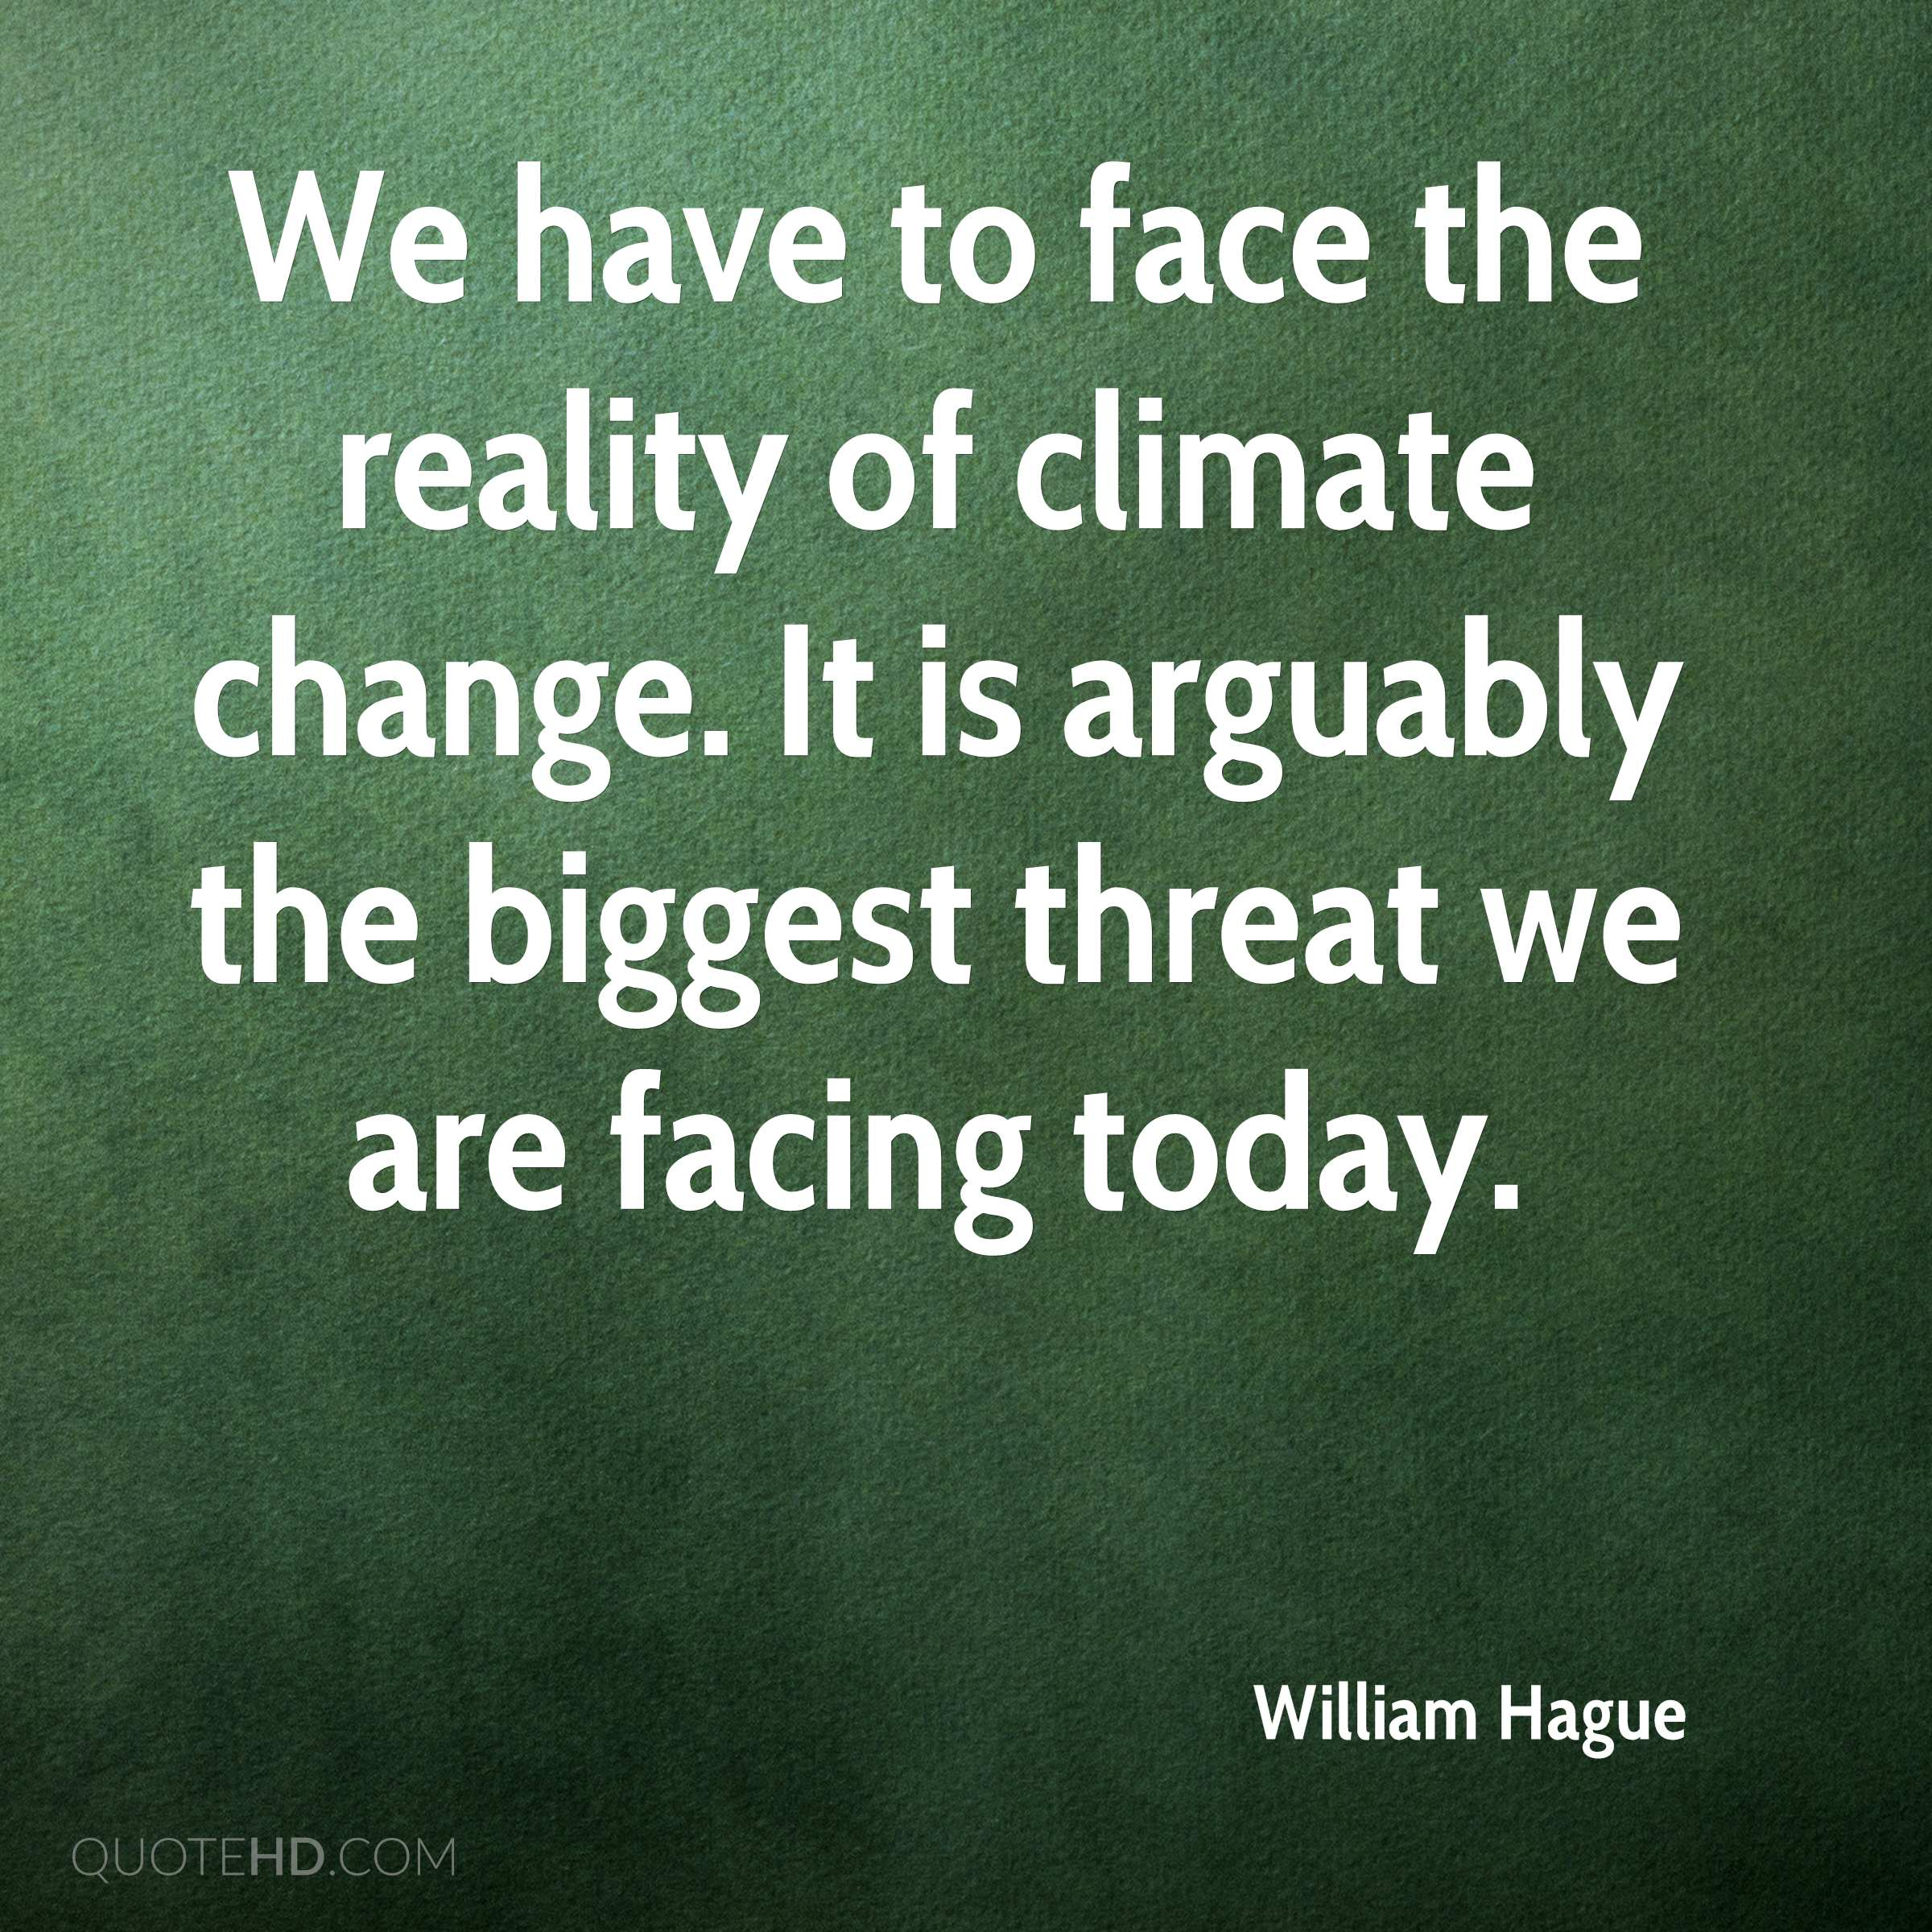 Climate Change Quotes: William Hague Change Quotes